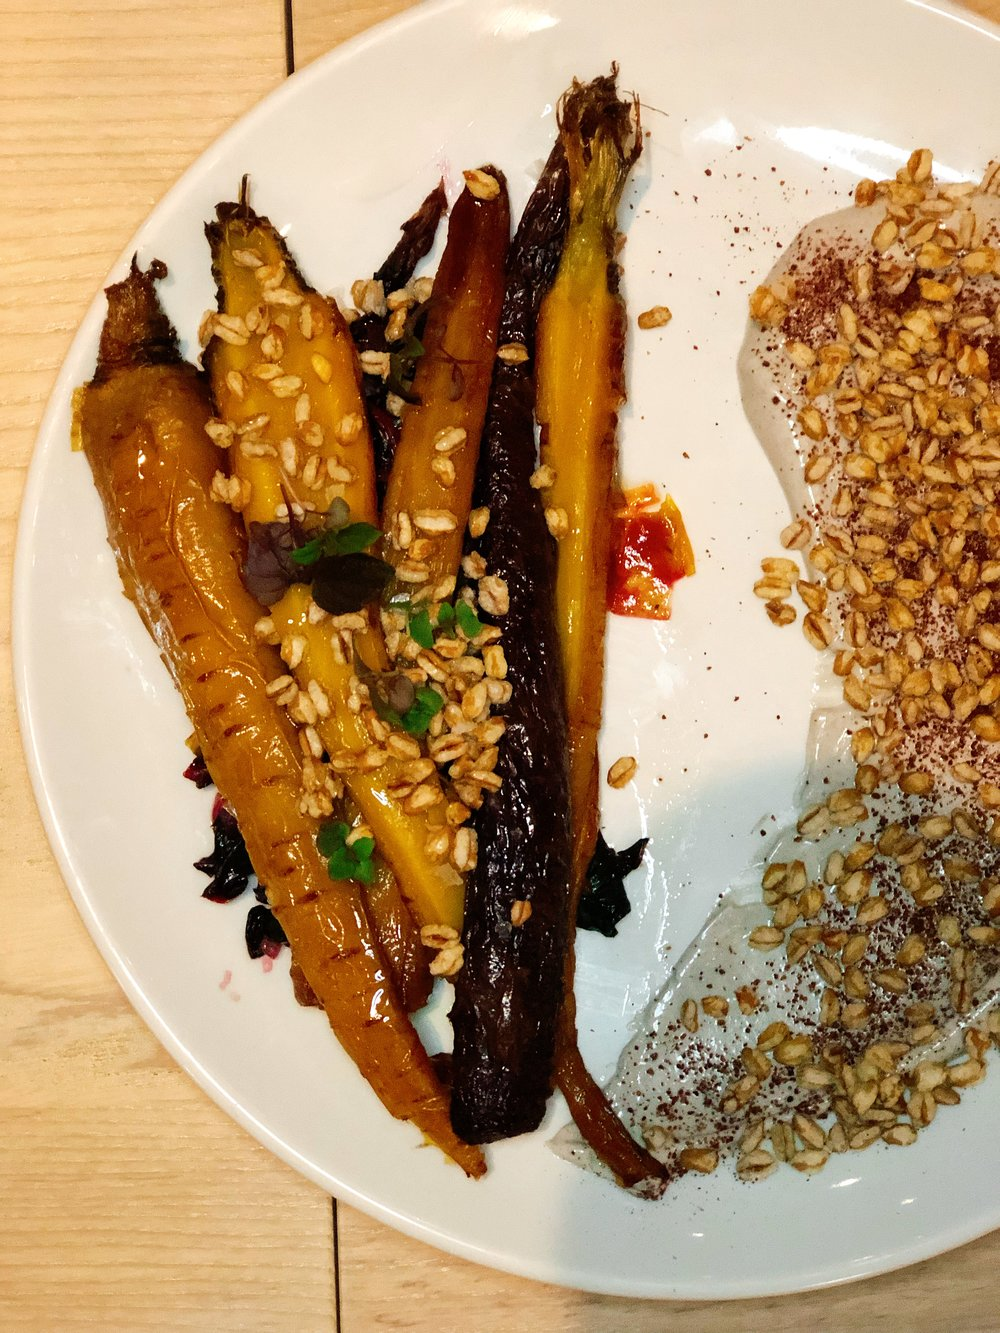 Roasted Heirloom Carrots | Chard + Puffed Grain + Mayu + Yogurt